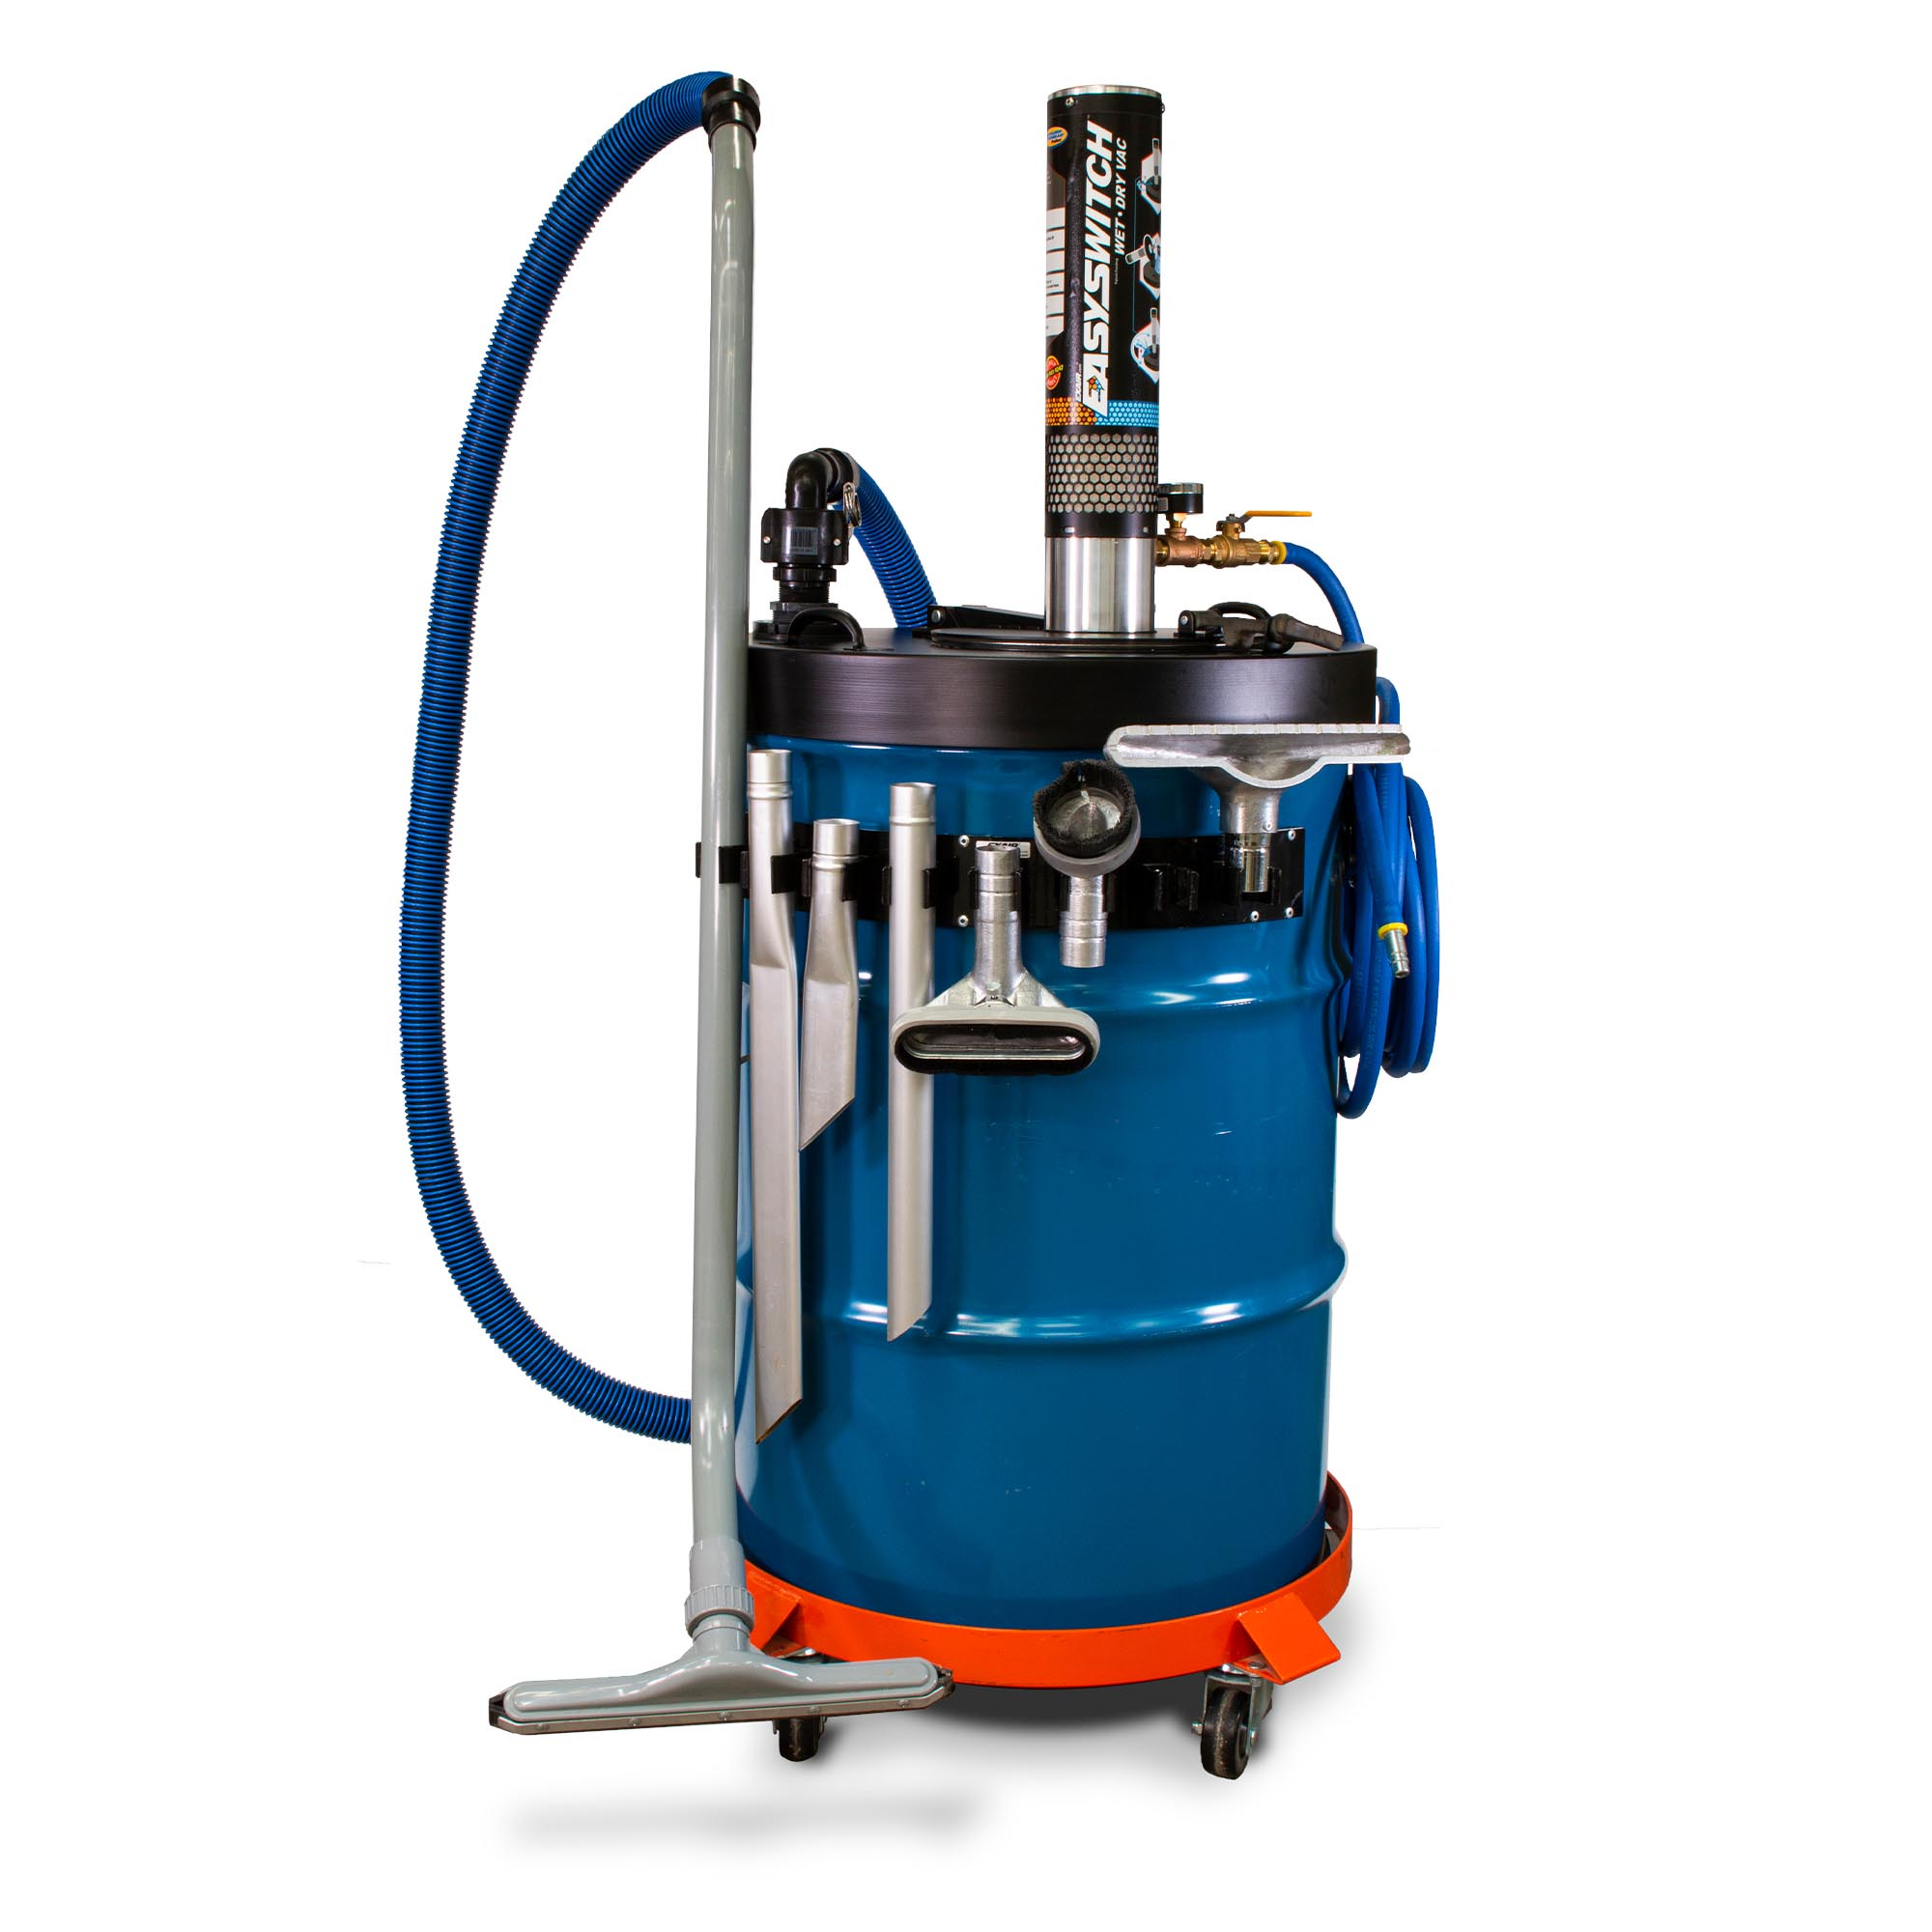 Model 6303 Premium HEPA EasySwitch Wet-Dry Vac System